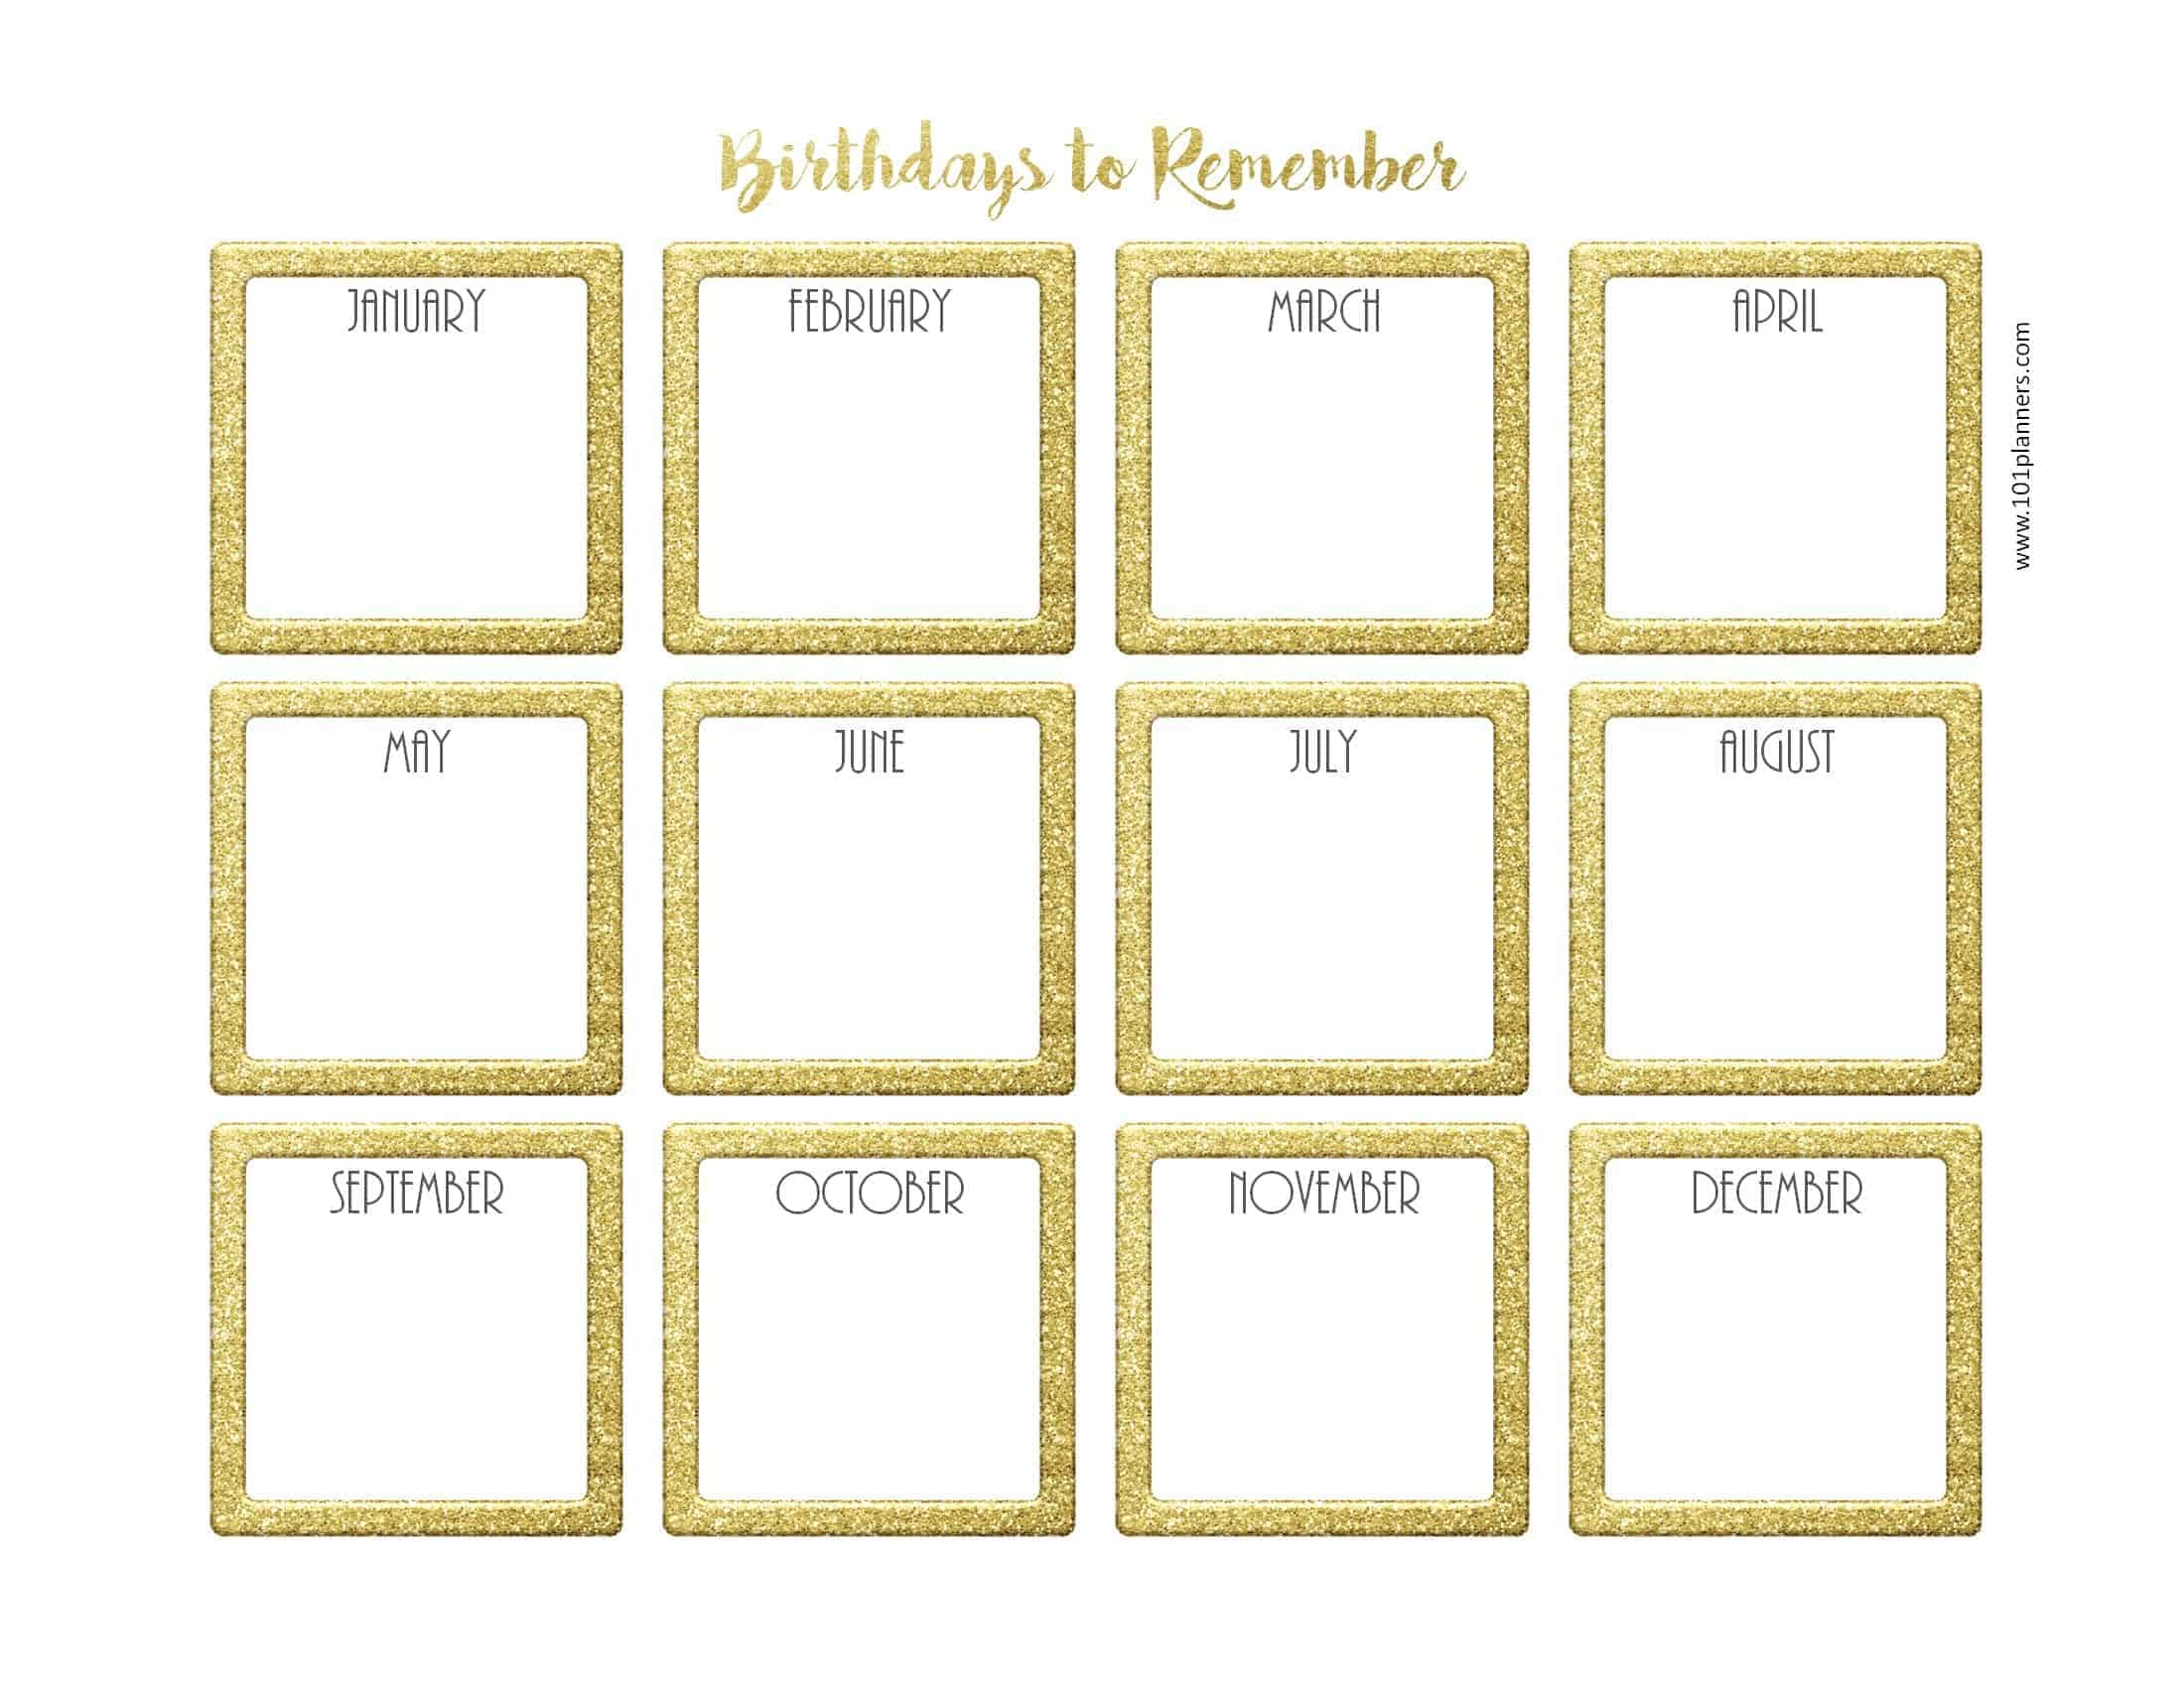 photo regarding Free Printable Perpetual Birthday Calendar Template known as Absolutely free Birthday Calendar Printable Customizable Countless